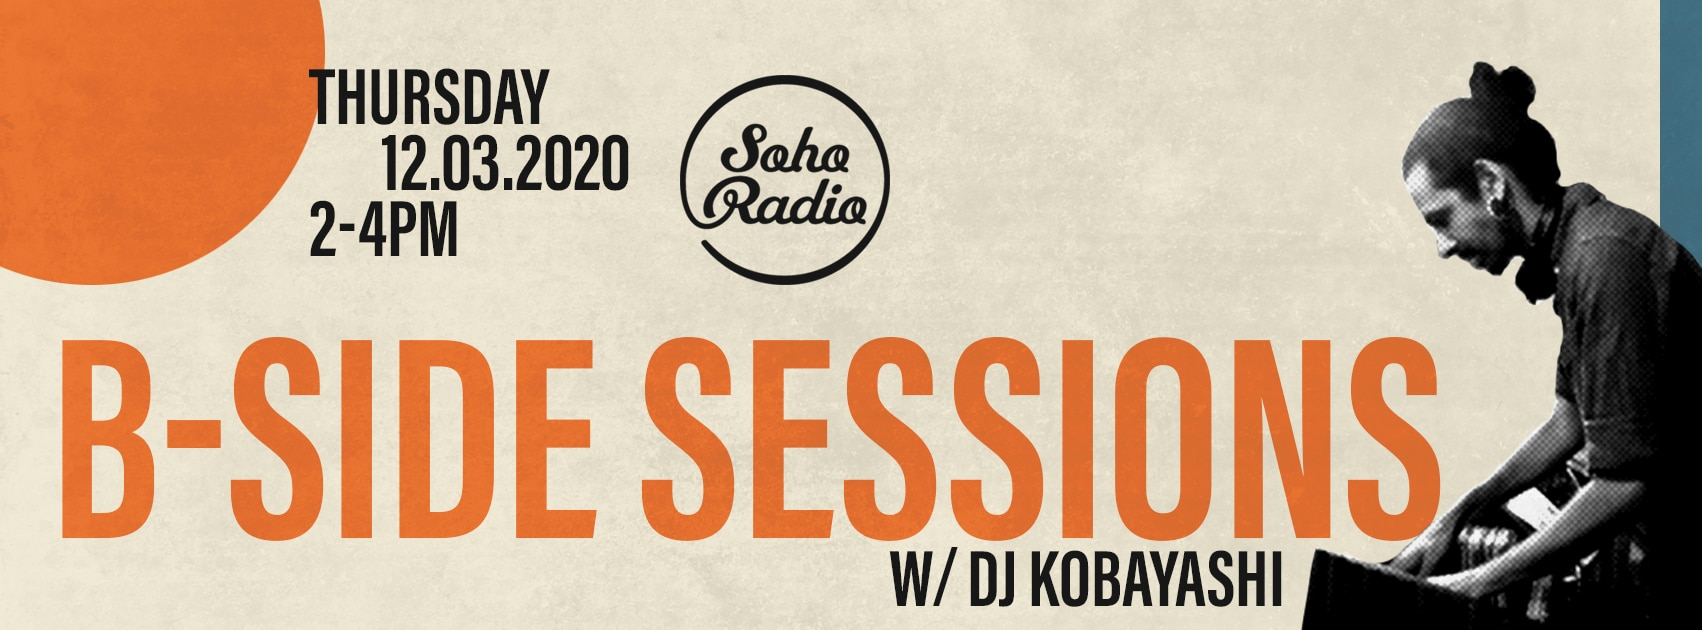 Kutiman and more B-side Sessions on Soho Radio